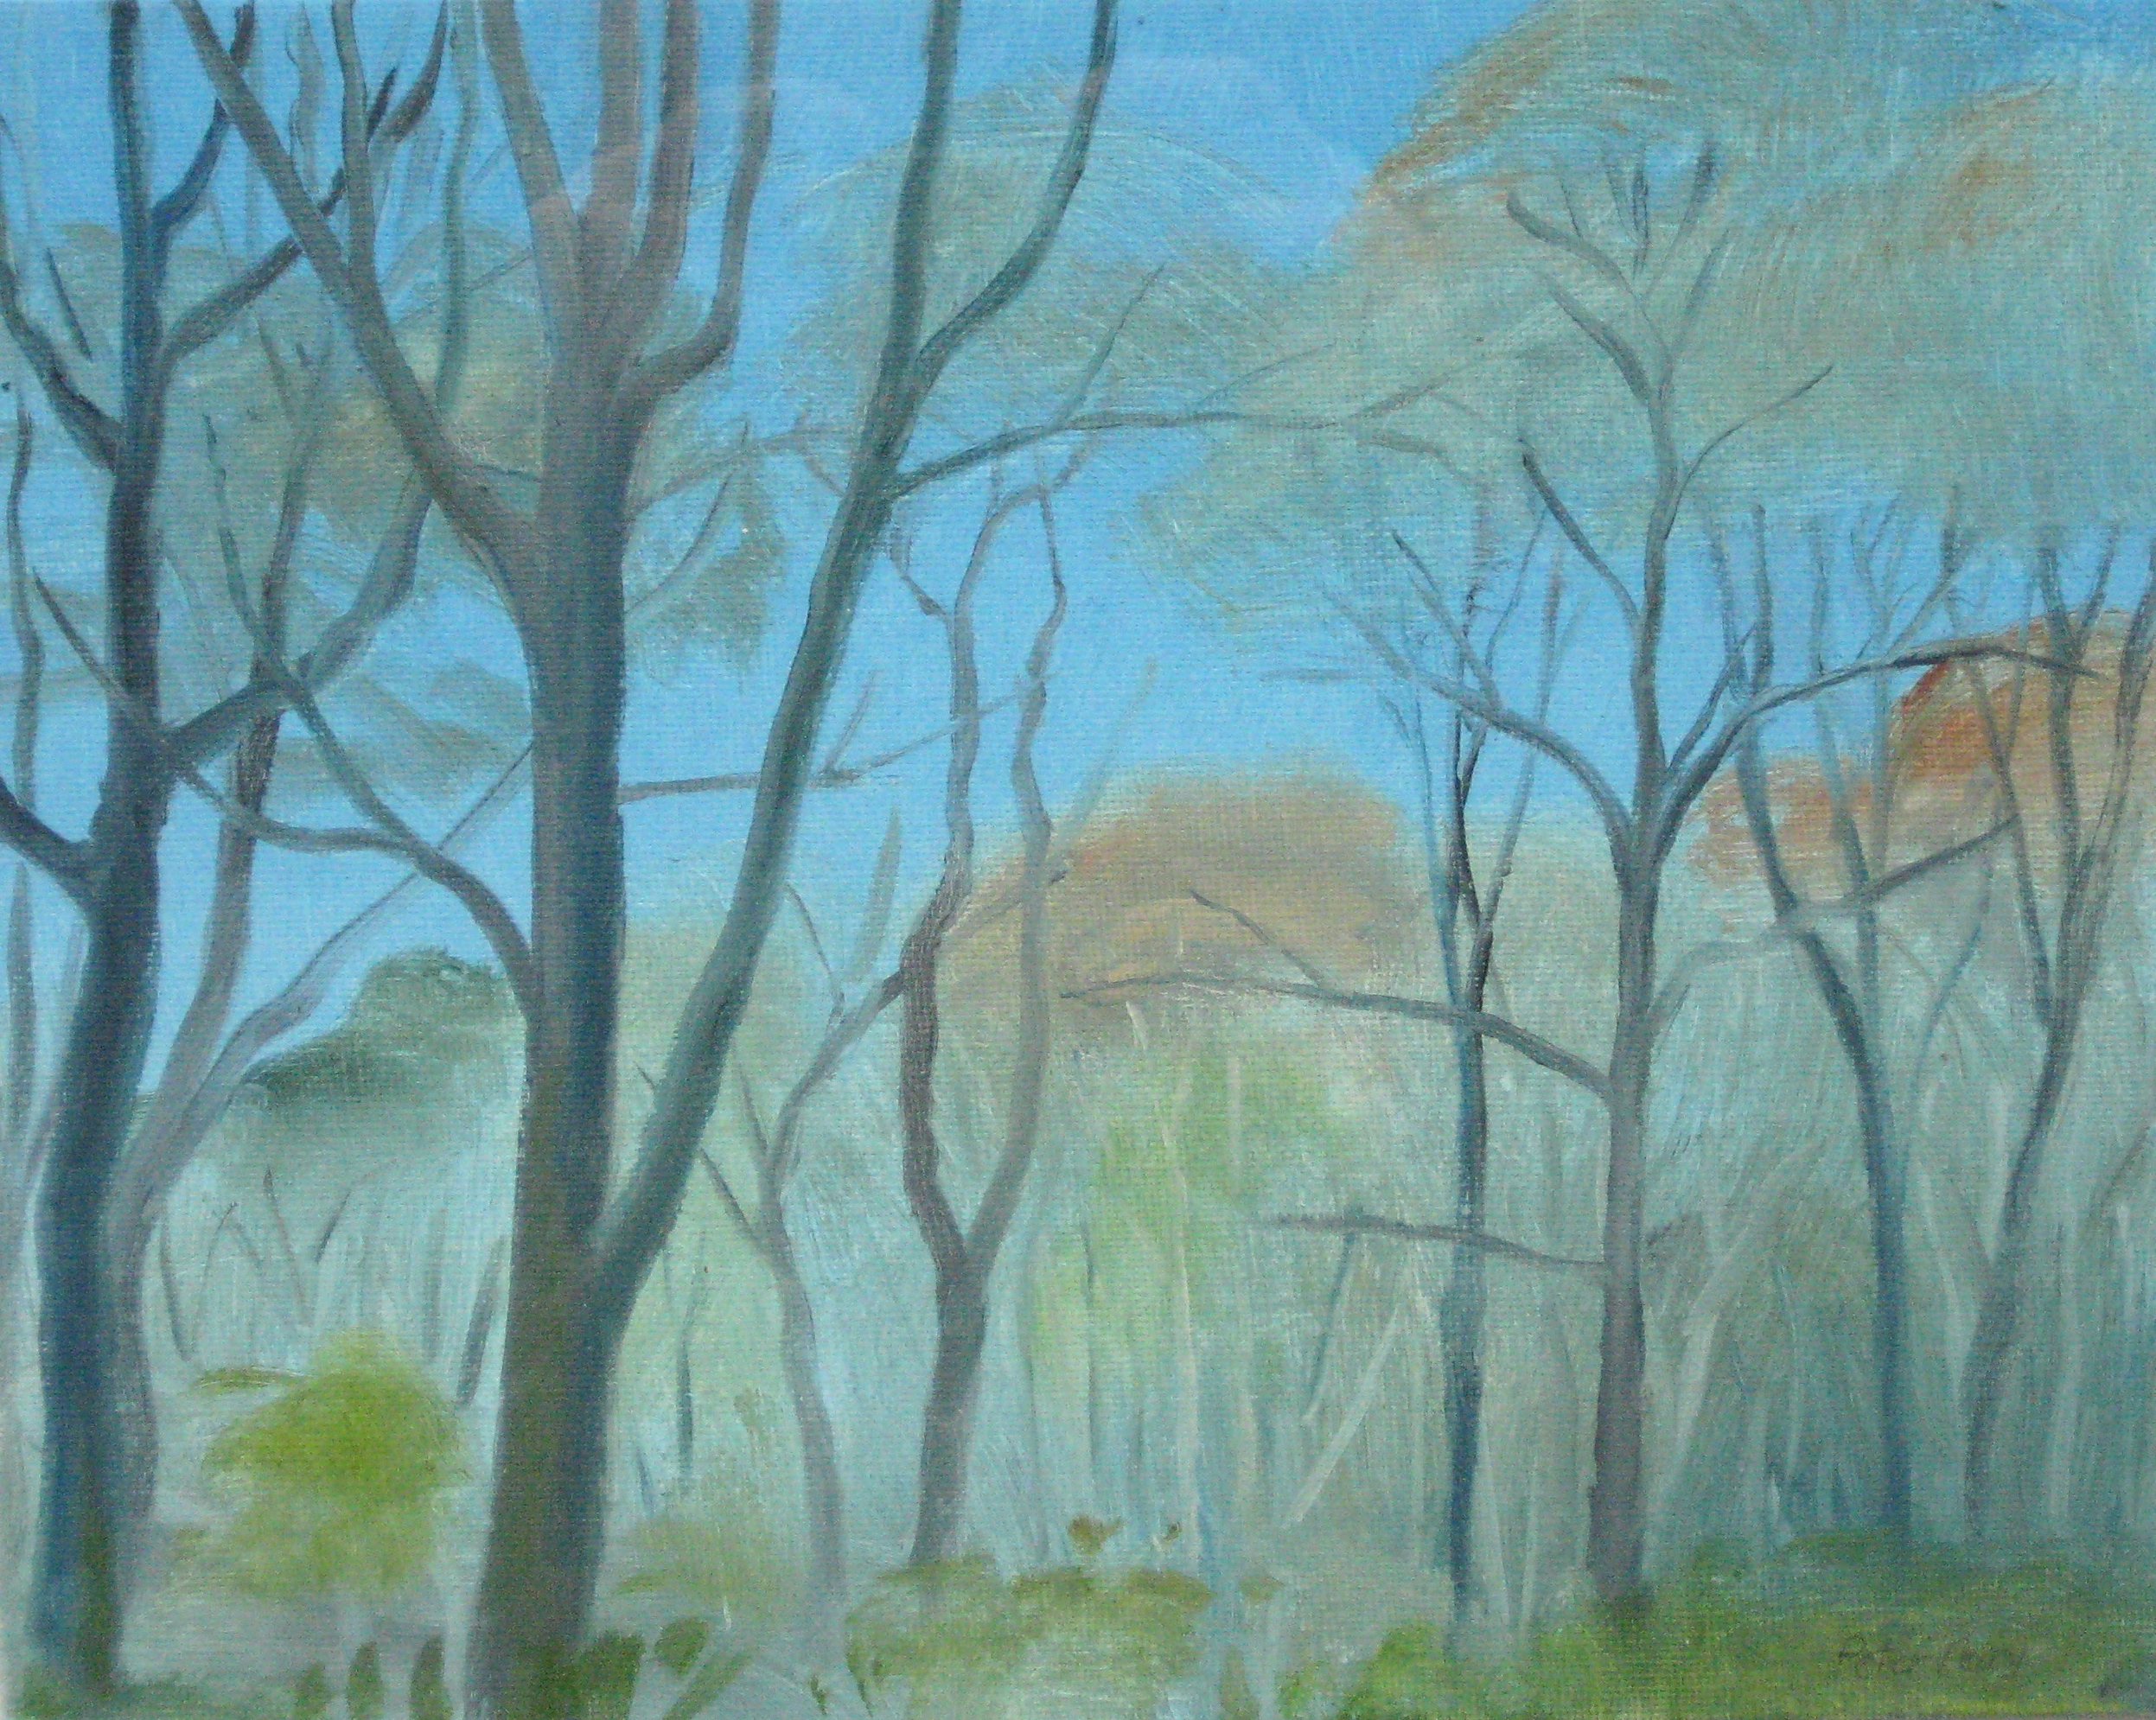 "TREVELLOE WOOD, EARLY SPRING II  8x10"" (20x25cm)  Oil on canvas board"